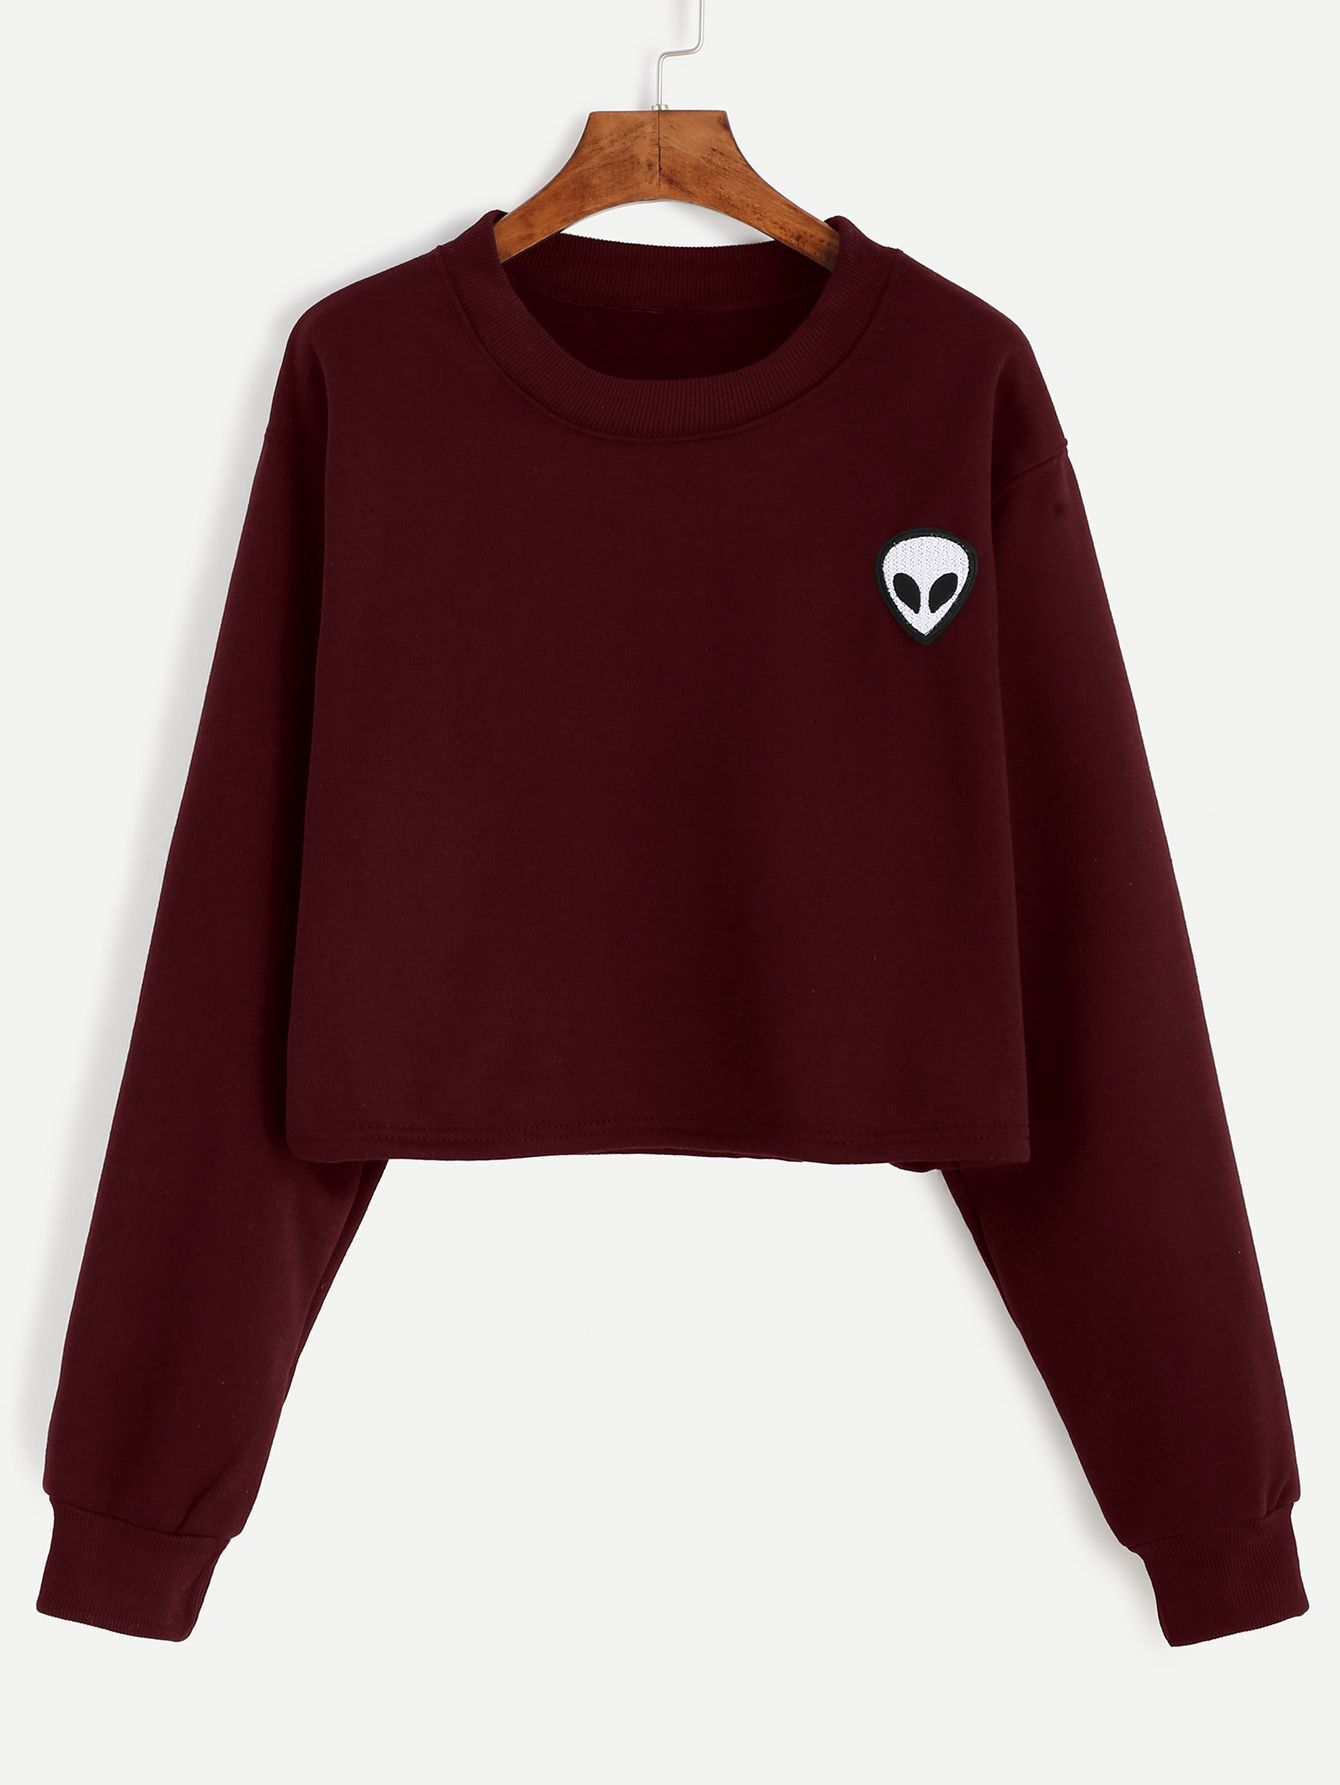 533af856de Shop Alien Embroidered Patch Crop Sweatshirt online. SheIn offers Alien  Embroidered Patch Crop Sweatshirt & more to fit your fashionable needs.